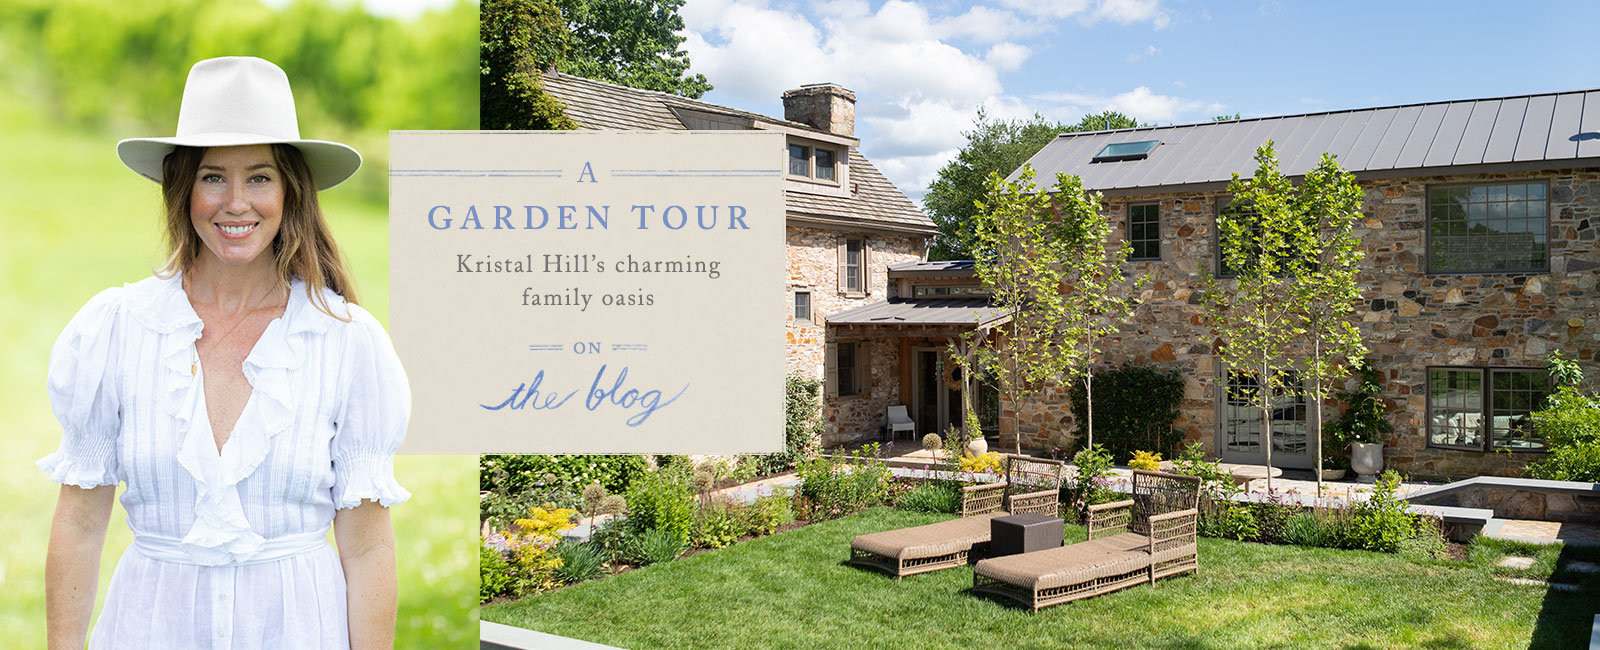 A gorgeous Chestnut Hill, PA Garden Tour | On the Blog